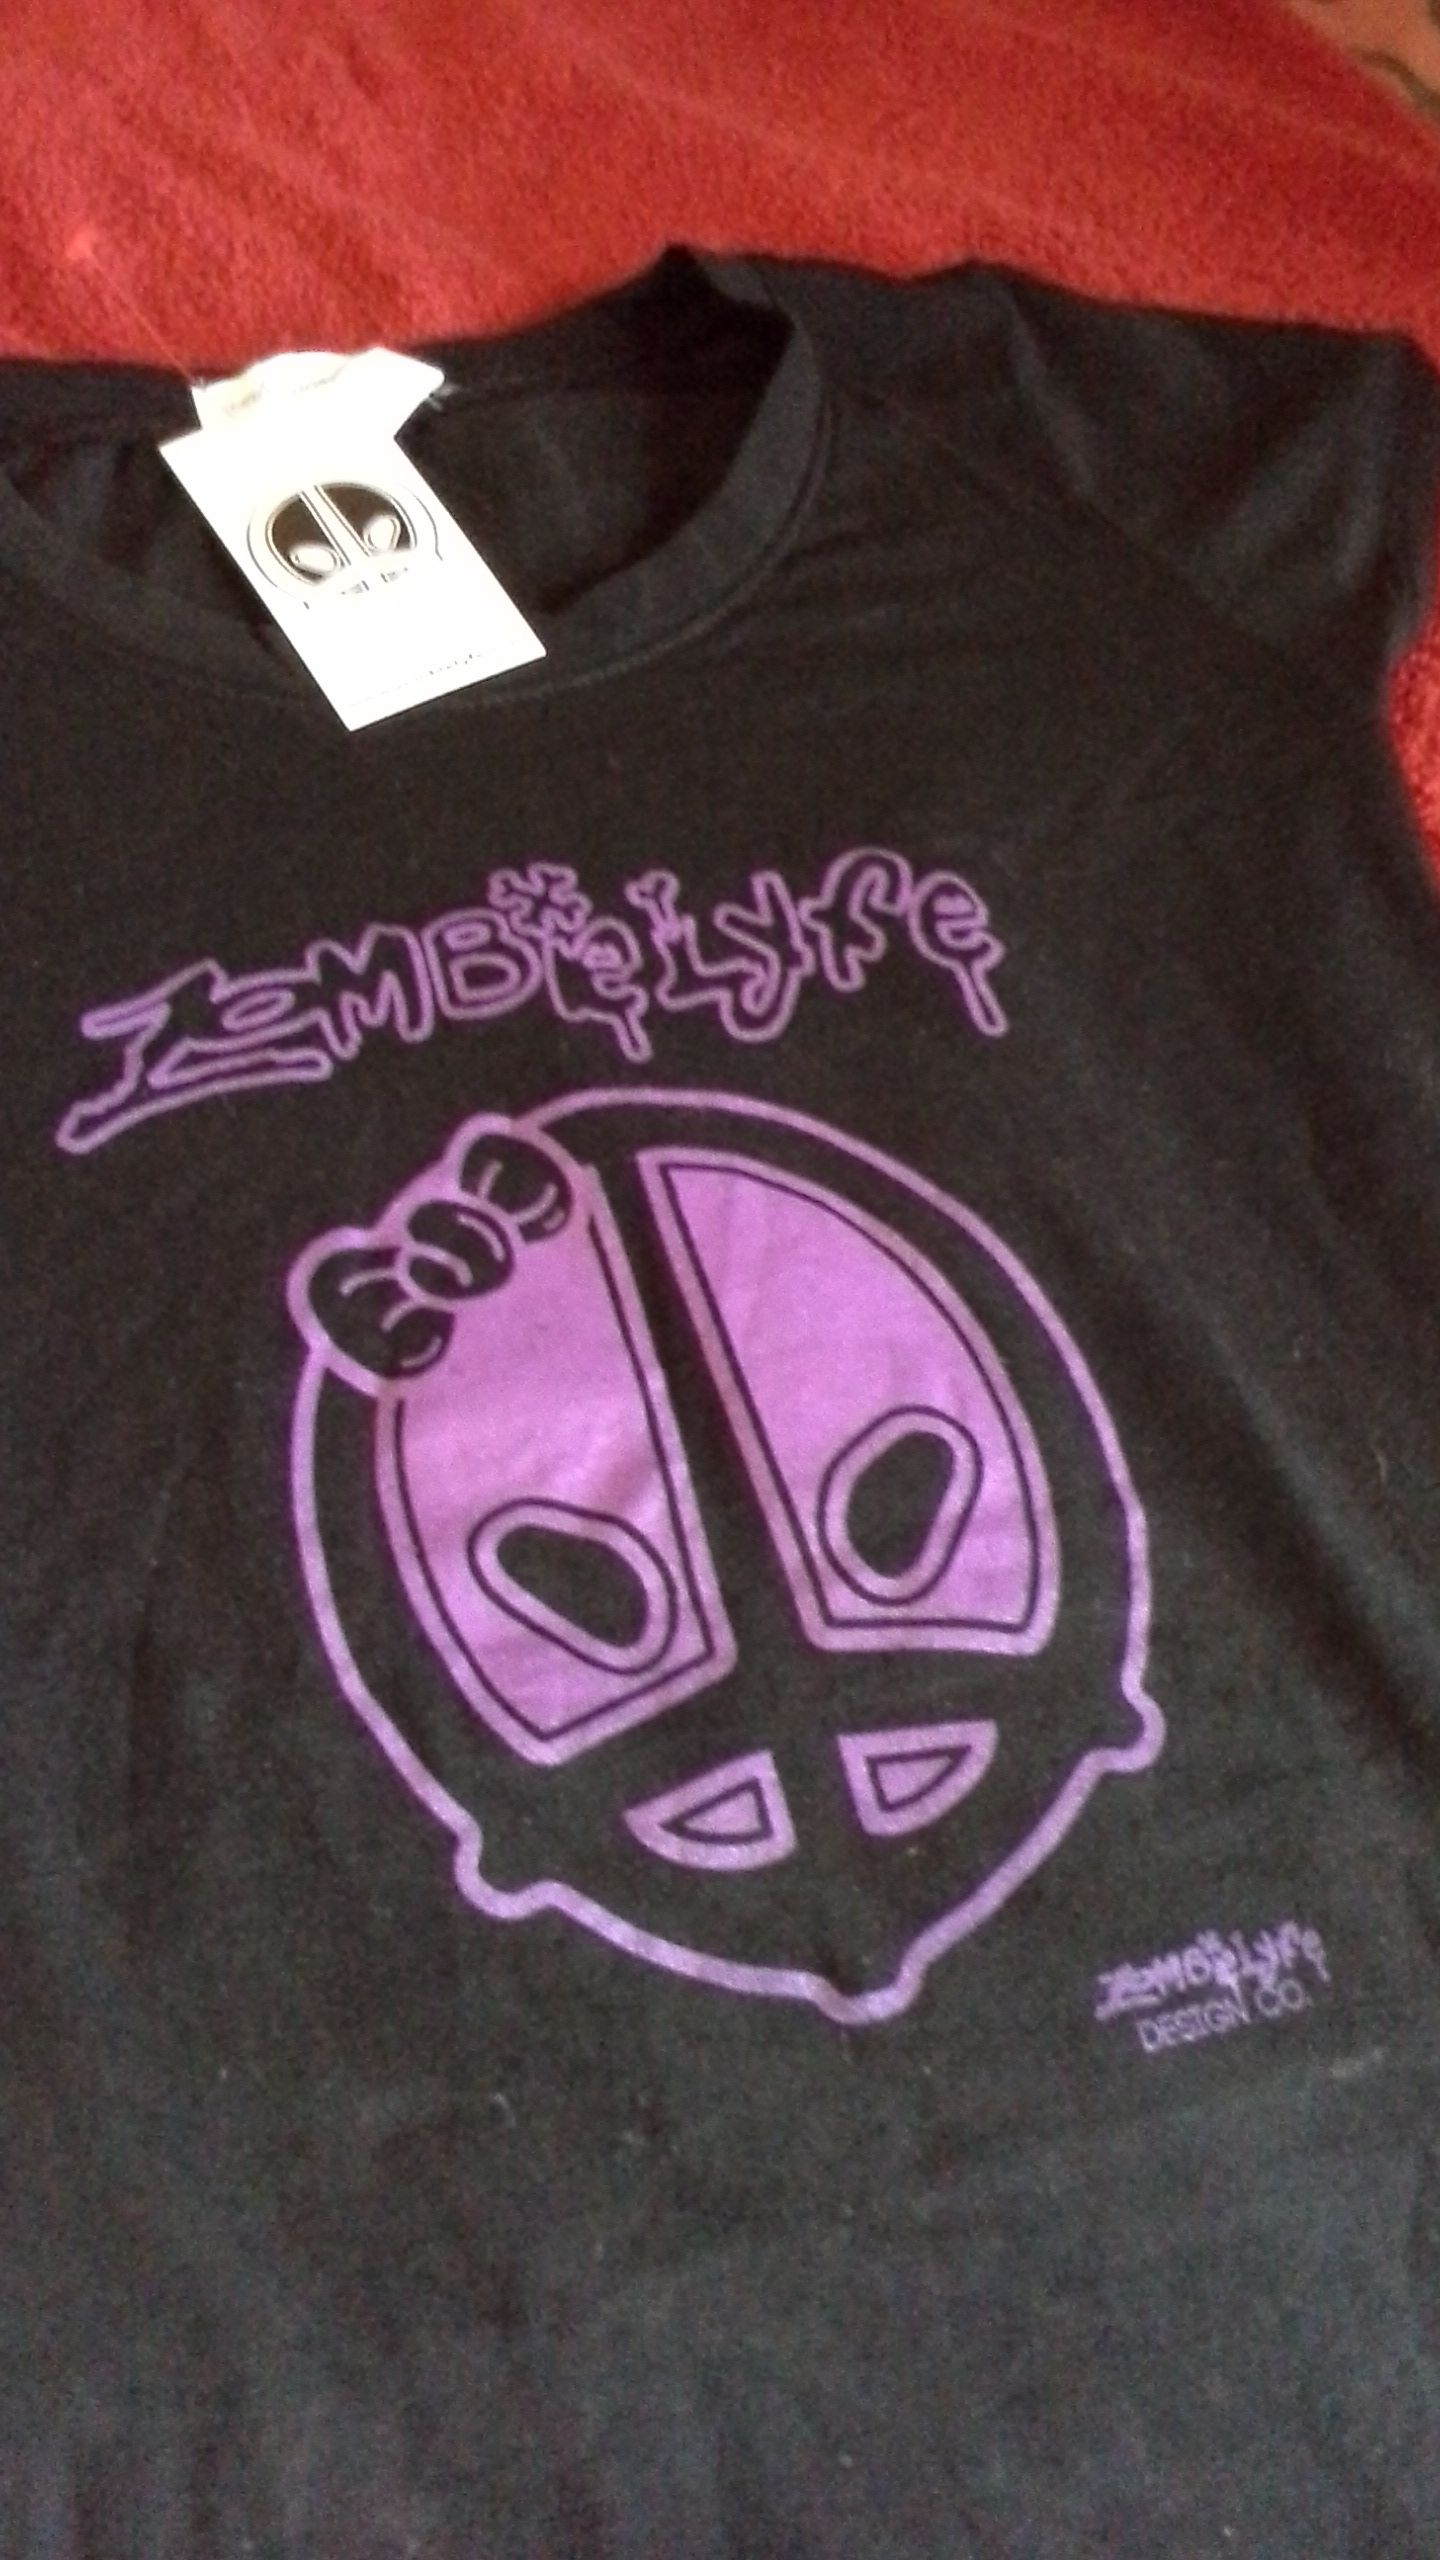 "Black women's Zombielyfe tshirt. Purple print in plastisol ink. 95% cotton and 5% spandex. Tshirt is hand signed by the designer on the back of the shirt under the neckline. $20.00 plus shipping fee ""hunger for knowledge"" www.zombielyfe.com instagram: kingthesis"